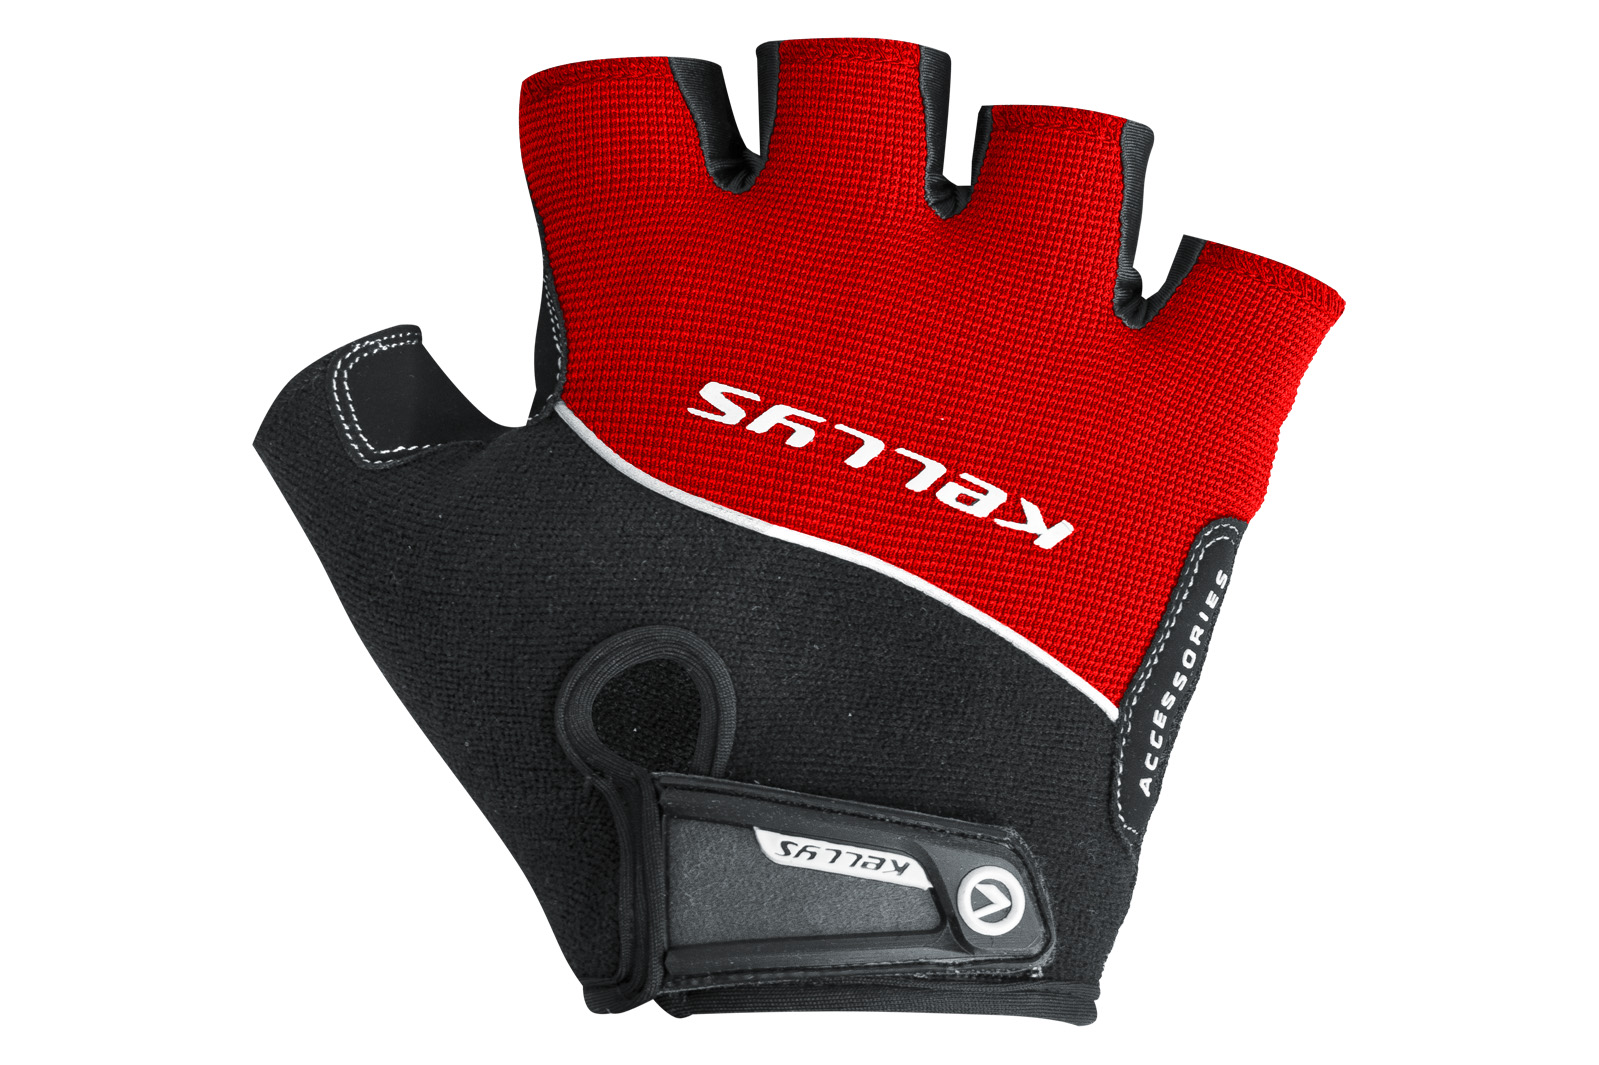 Handschuhe RACE red XS NEW - Mile-Multisport